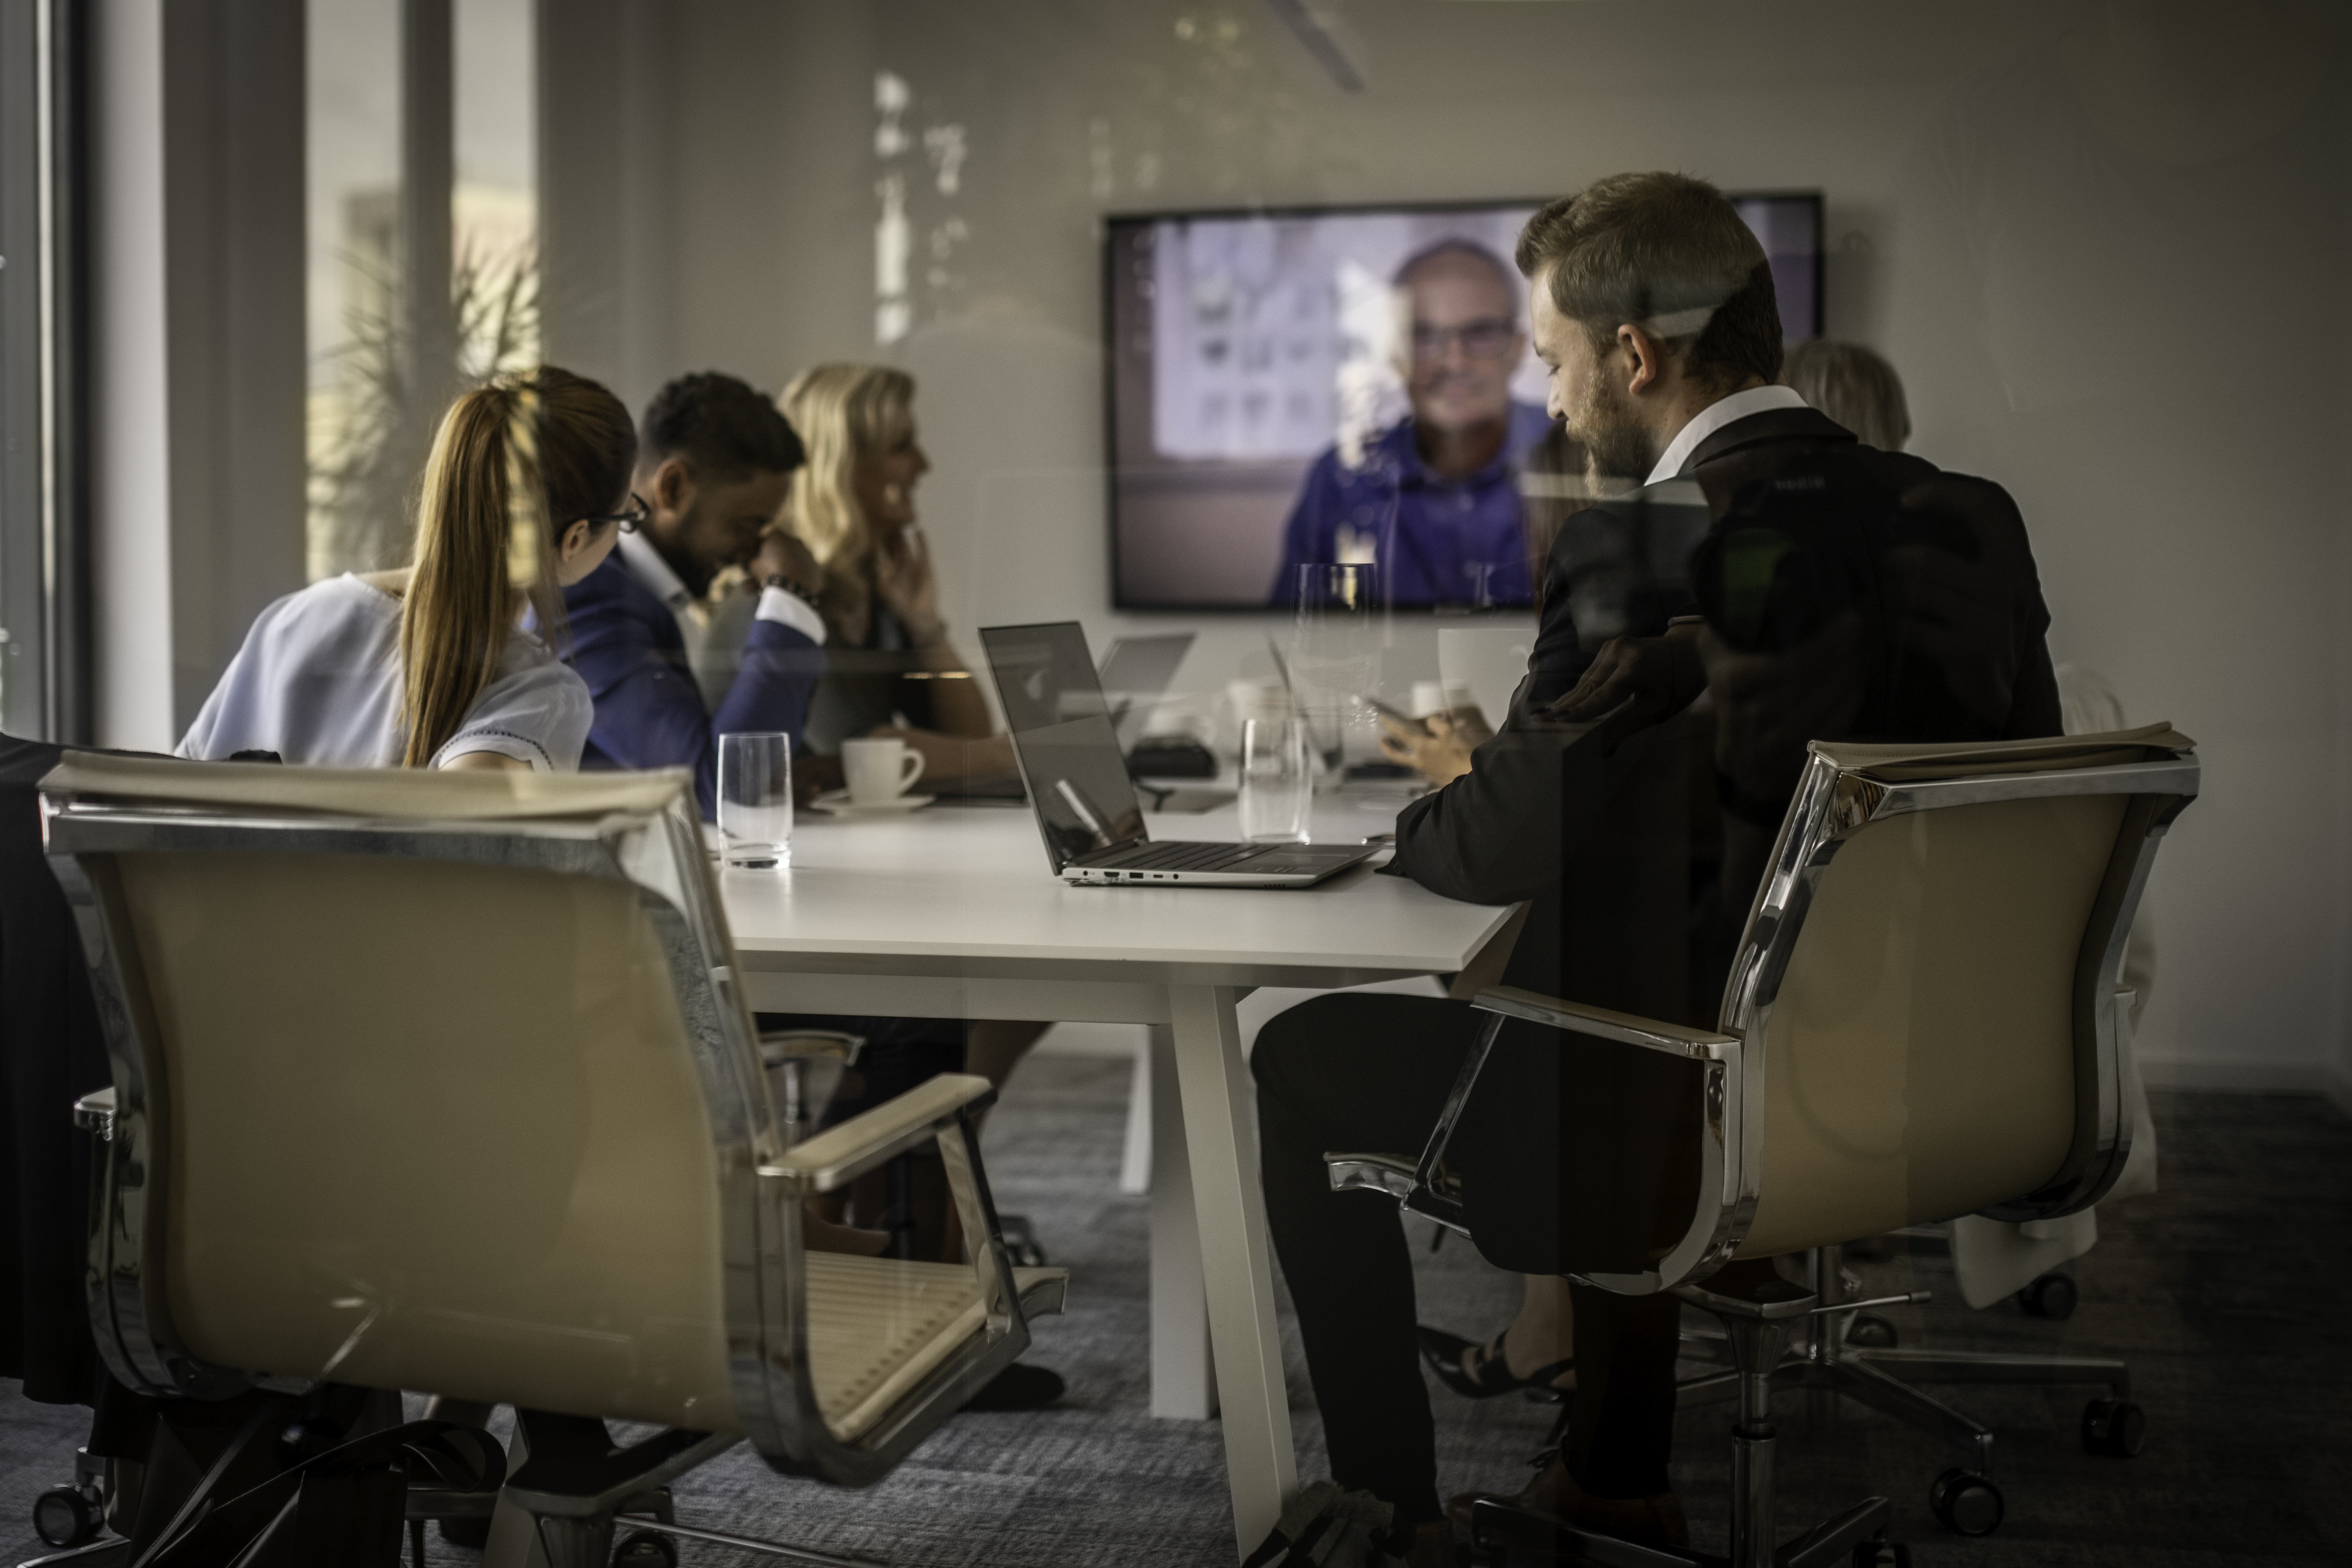 Business people having a meeting and a video conference in a modern office conference room.